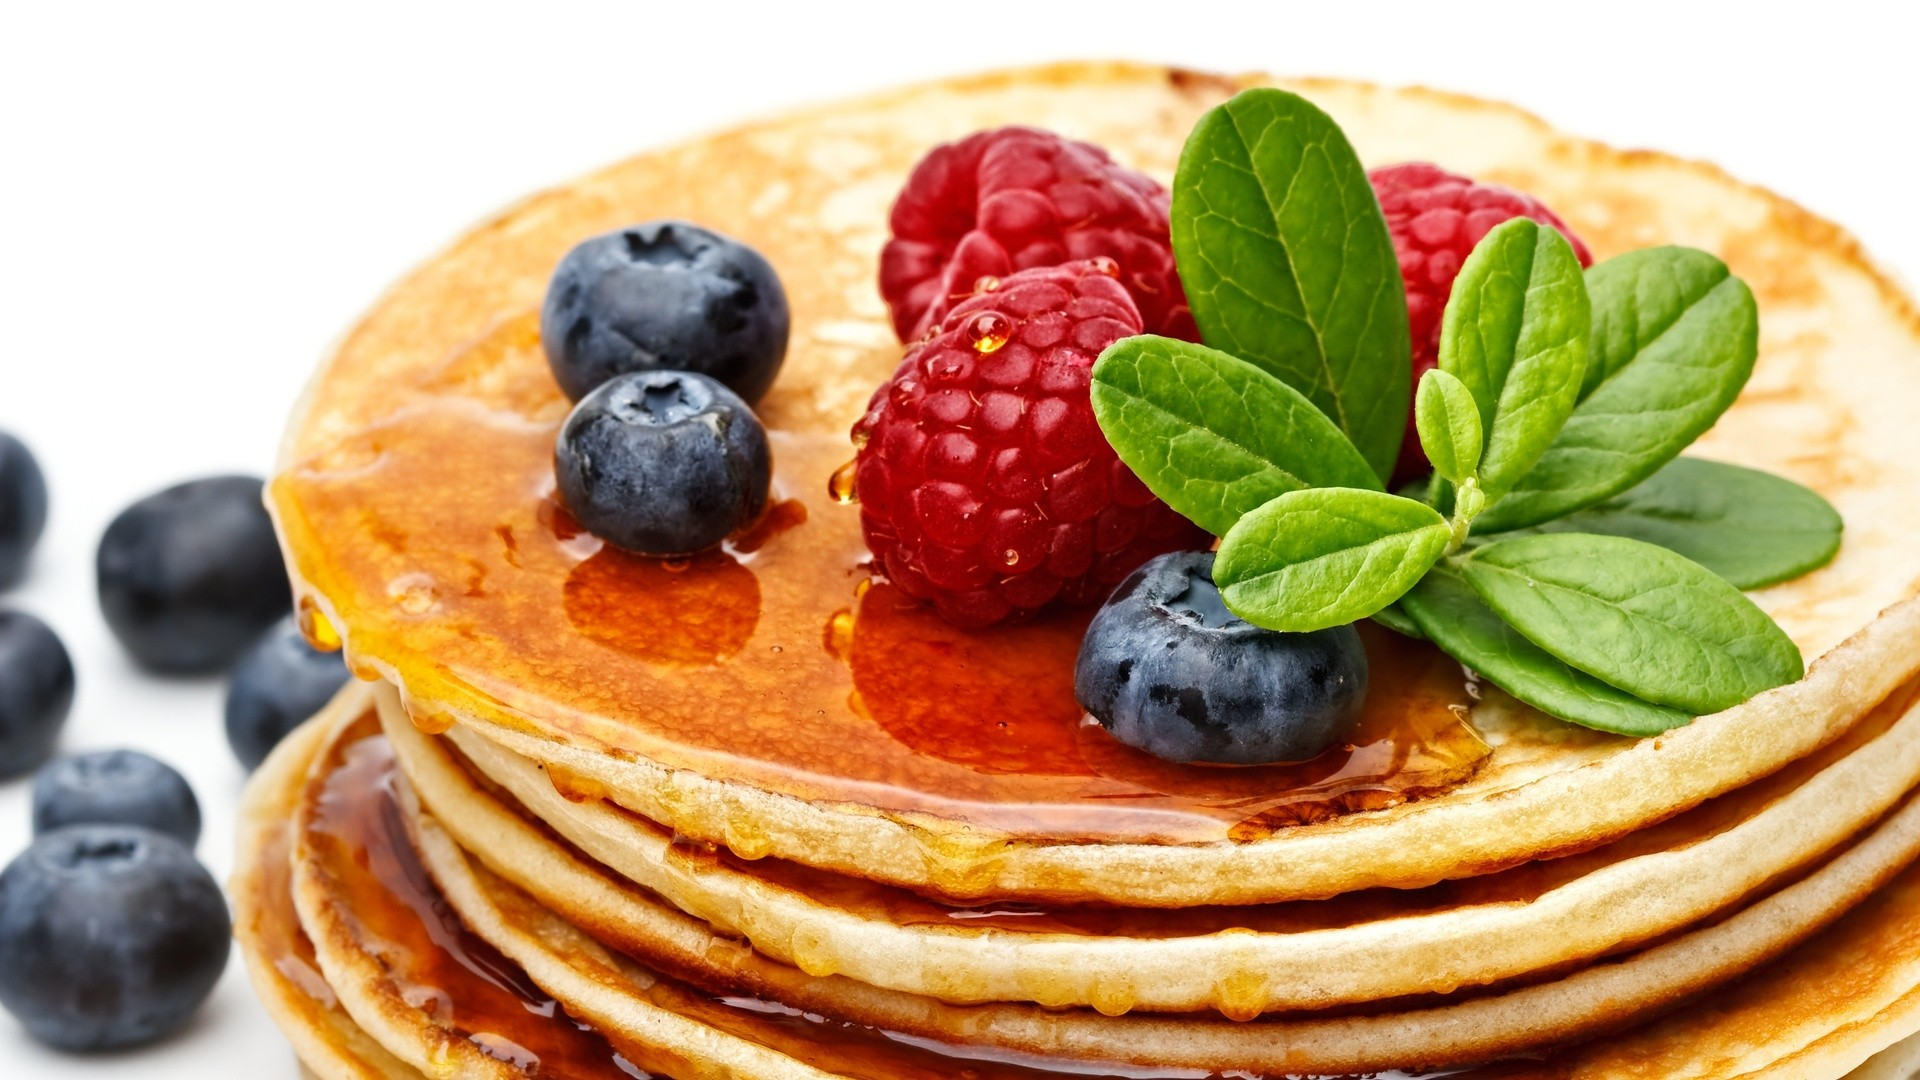 Pancake background picture hd